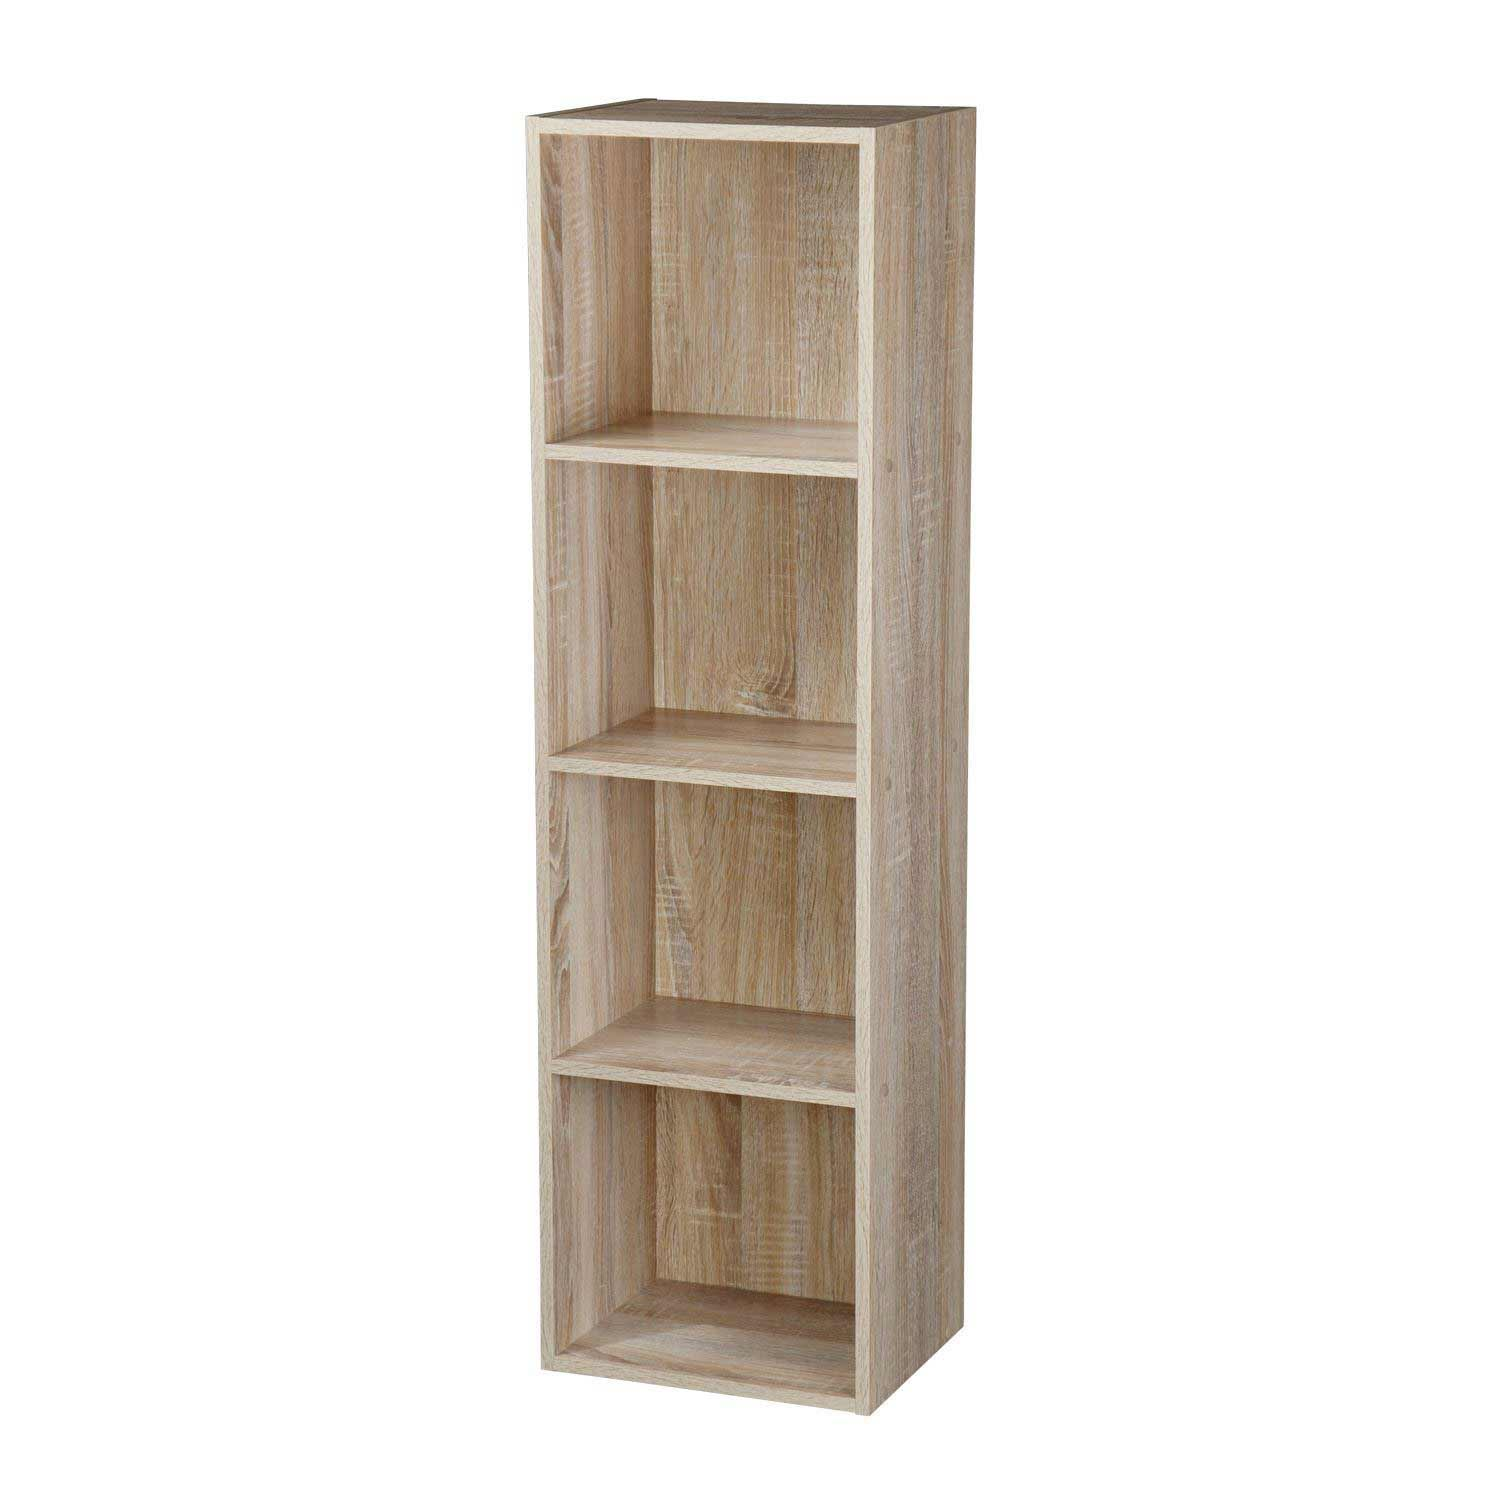 Wooden-Storage-Unit-Cube-2-3-4-Tier-Strong-Bookcase-Shelving-Home-Office-Display thumbnail 13